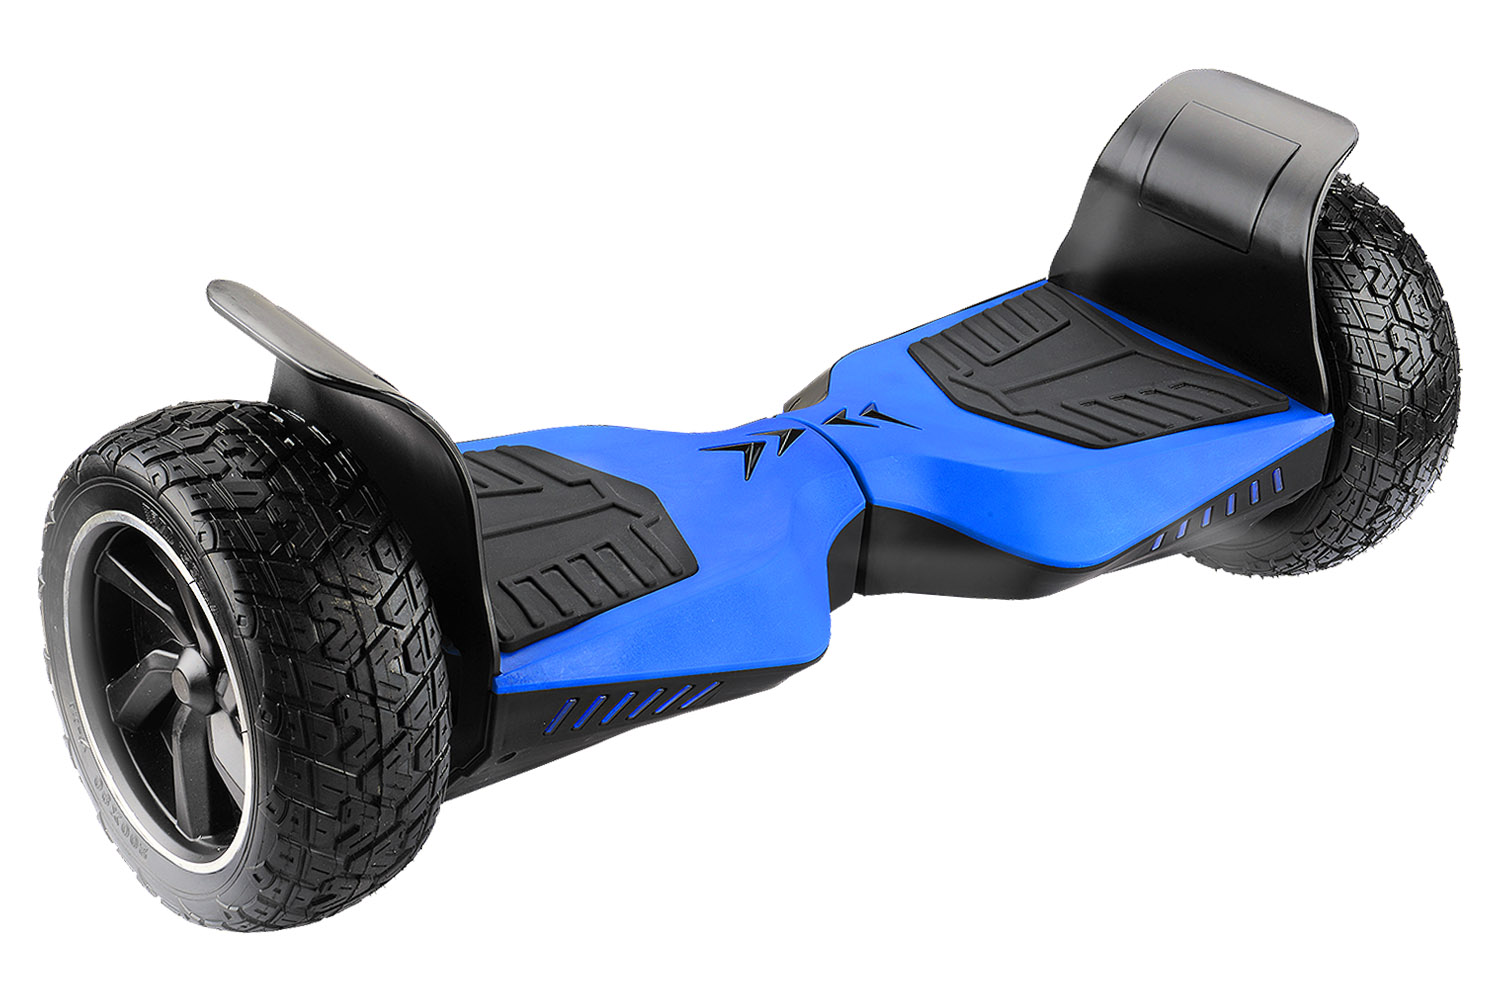 2x 350w smarty hoverboard 8 5 zoll berlin mit app steuerung offroad elektromobile pickhardt. Black Bedroom Furniture Sets. Home Design Ideas